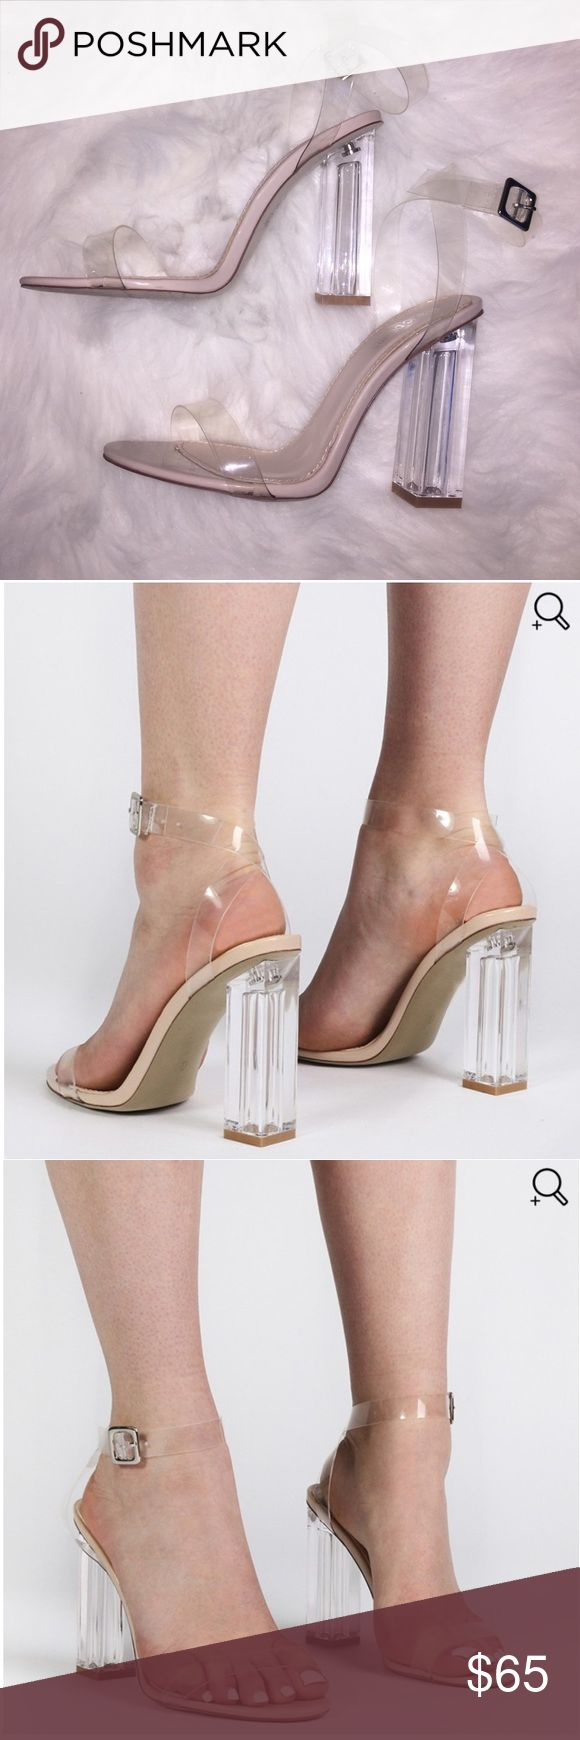 Clear Perspex Heels Yeezy inspired clear perspex heels as seen on all the Kardashians and more! They're too big for me so I got a new size and I need to get rid of these. Only tried on once. Labeled a women's size 6 Yeezy Shoes